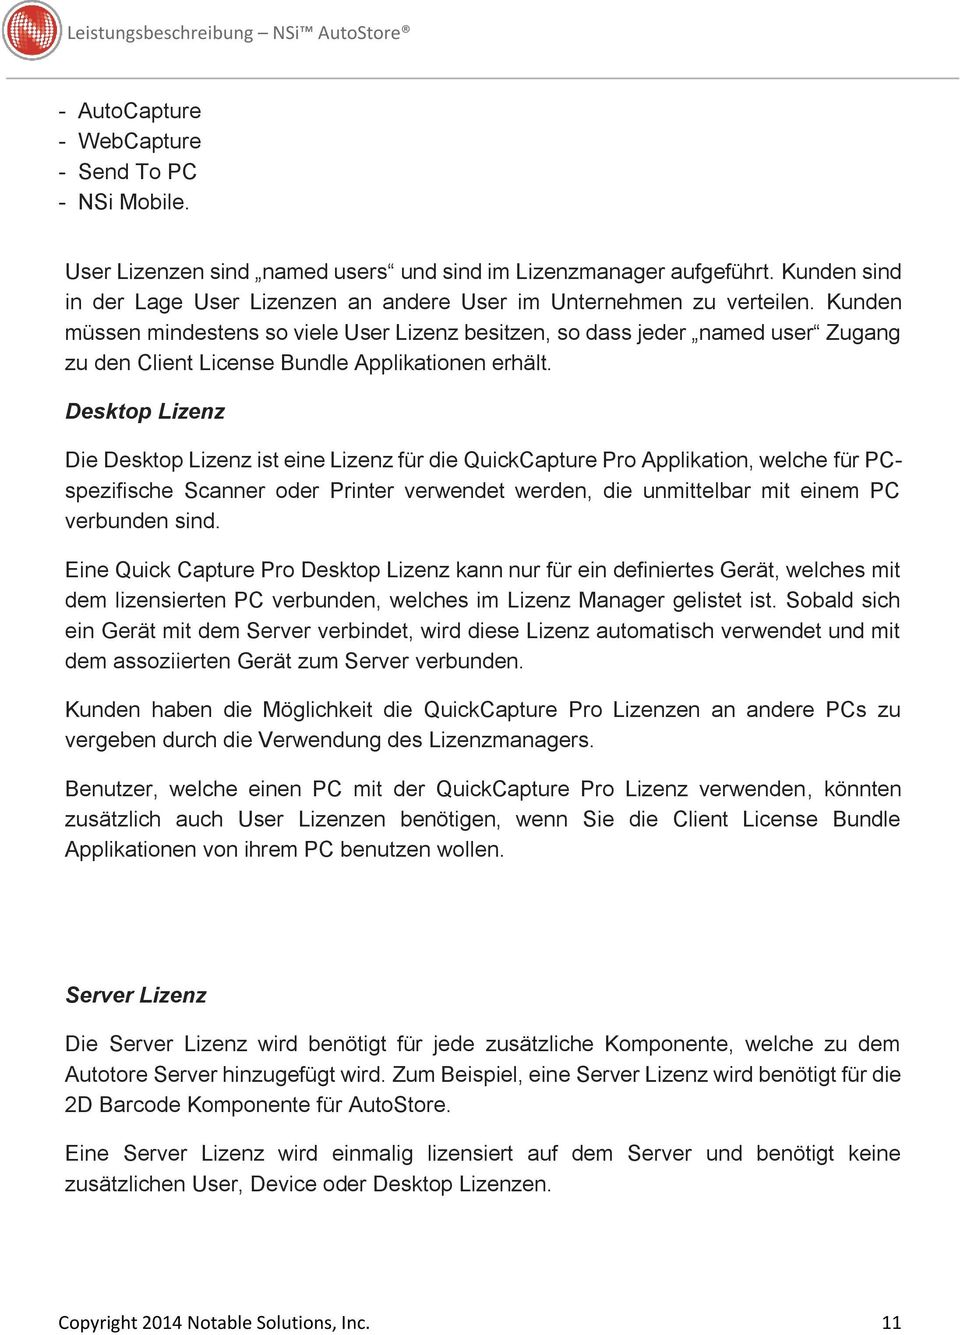 Kunden müssen mindestens so viele User Lizenz besitzen, so dass jeder named user Zugang zu den Client License Bundle Applikationen erhält.